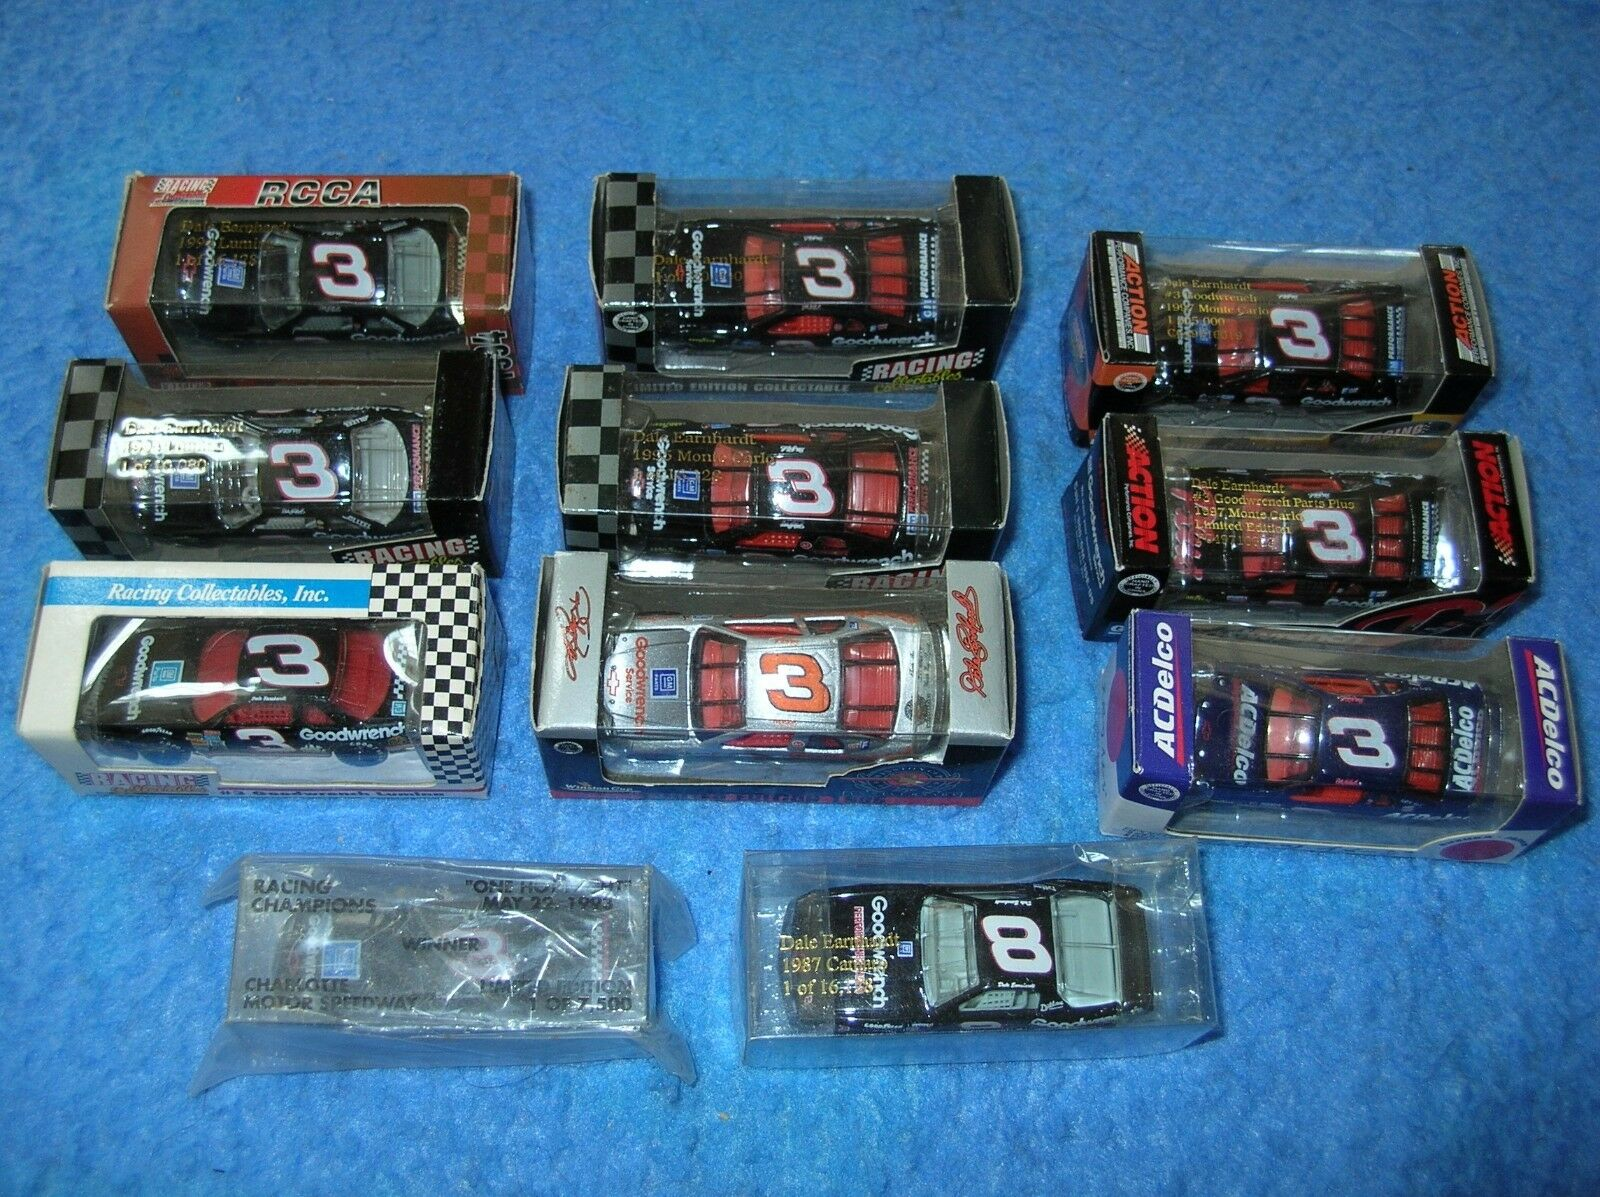 11 Nascar Diecast 3 Dale Earnhardt Action Racing Collectables Suzuka Caja 1 64 Club of America AC Delco GM Chevy